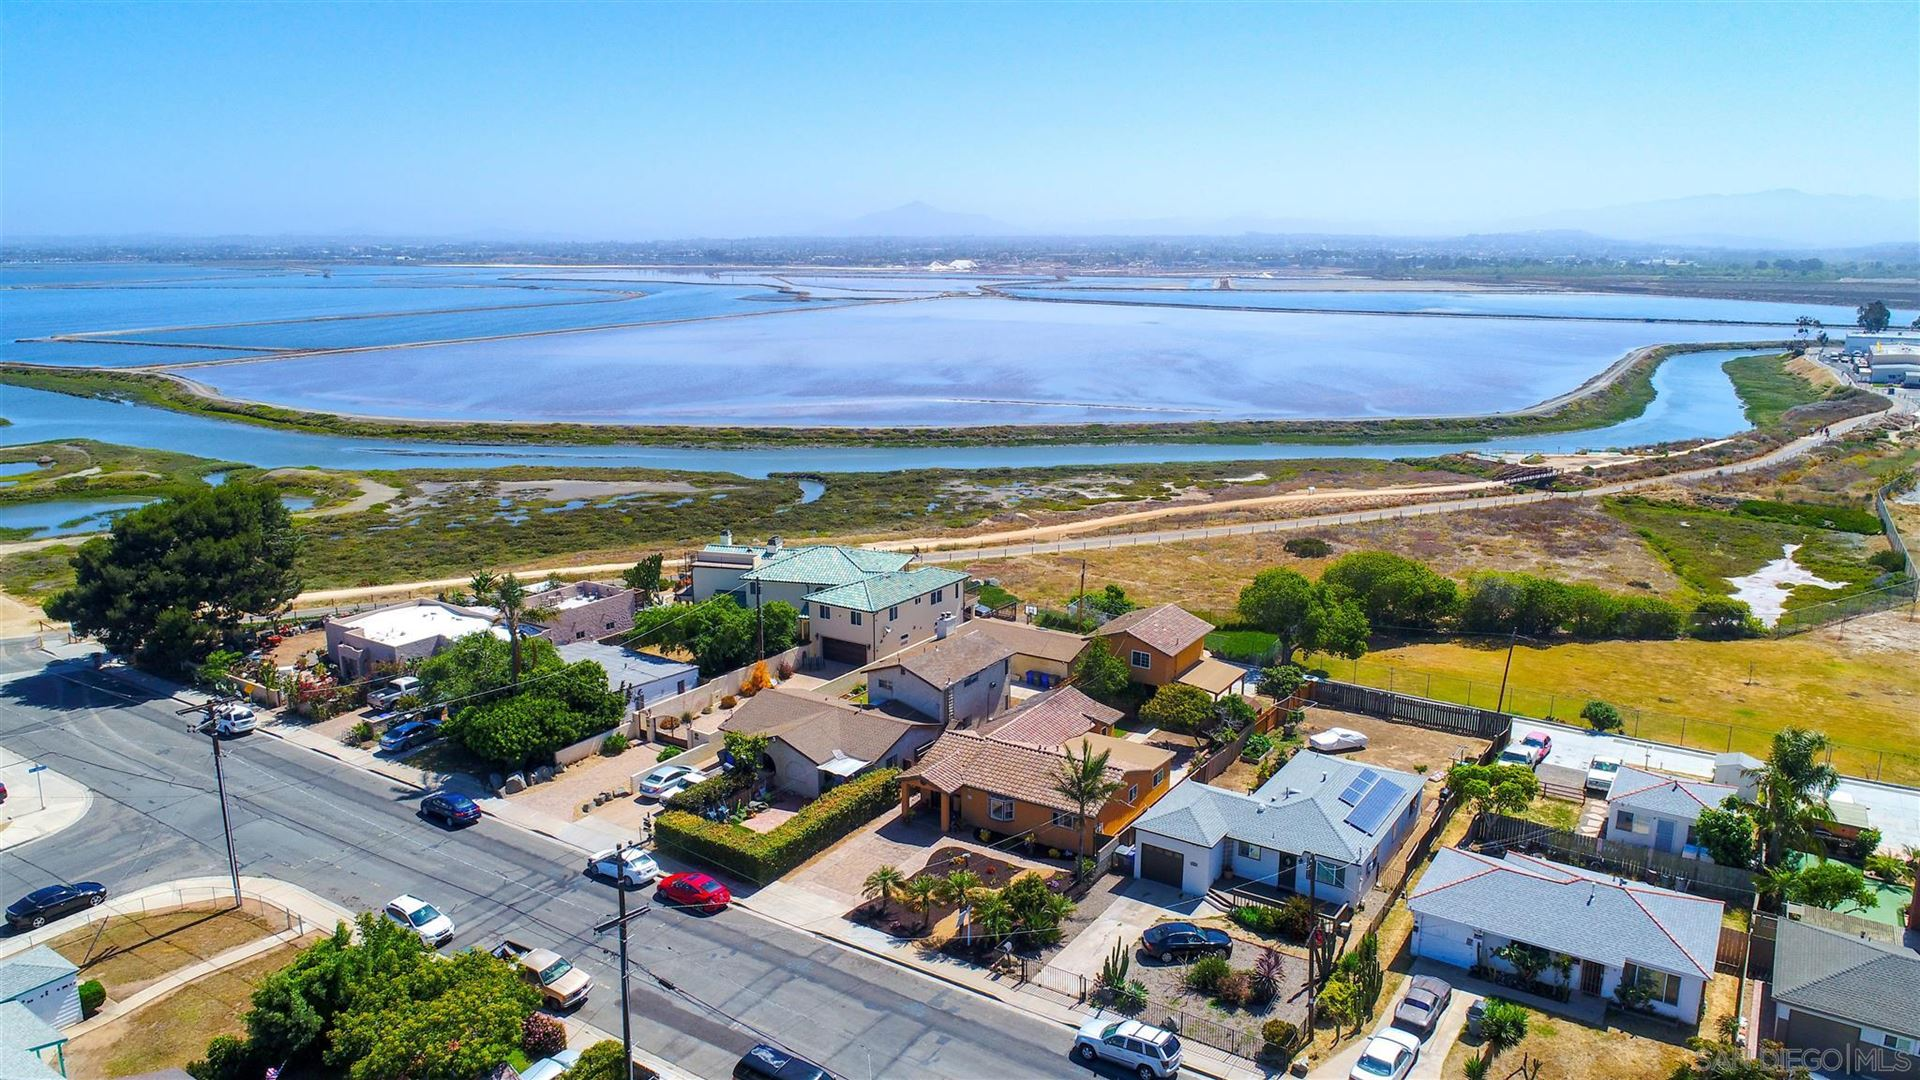 Photo of 417 8th St, Imperial Beach, CA 91932 (MLS # 210016299)